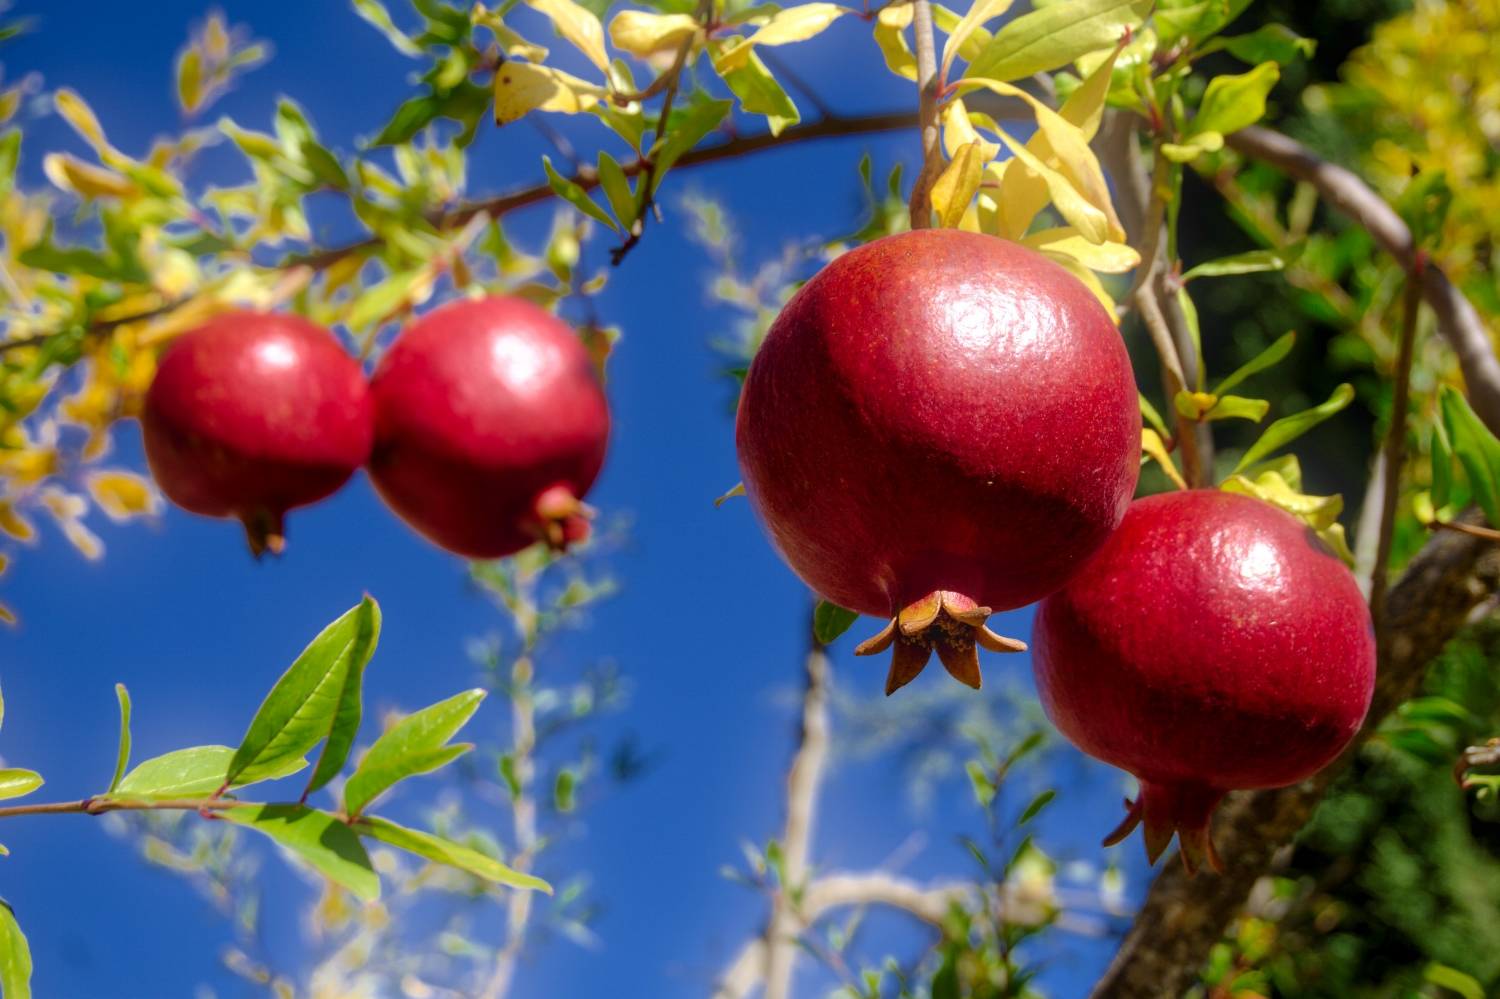 Ruby red pomegranates basking in the sun.